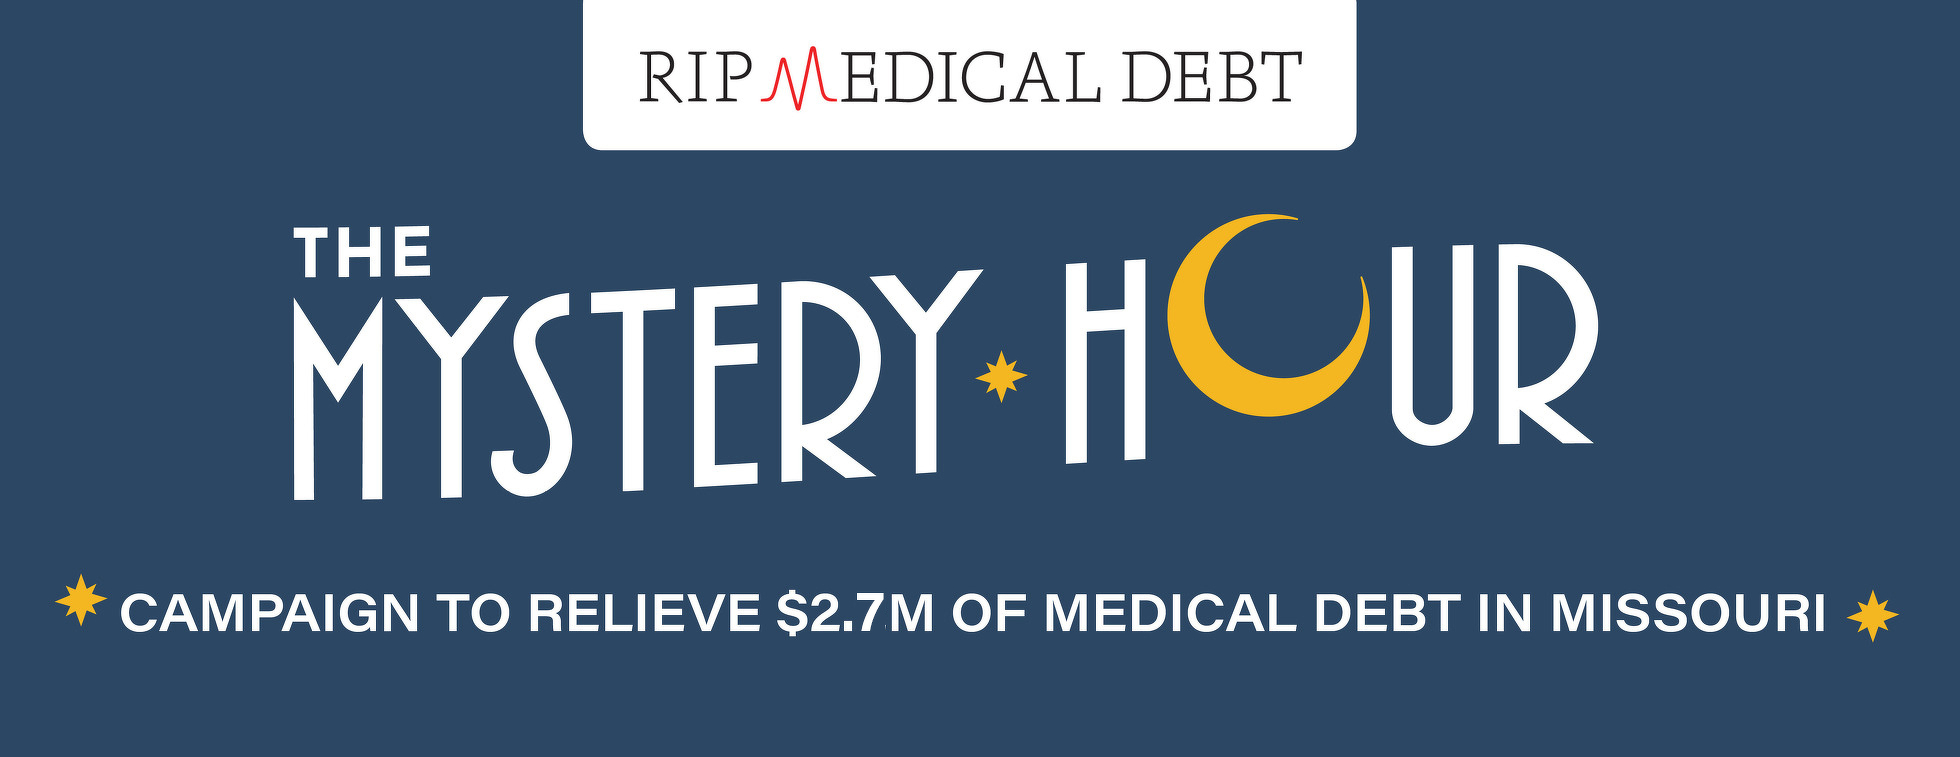 Mystery Hour's Campaign to Abolish Medical Debt in Missouri